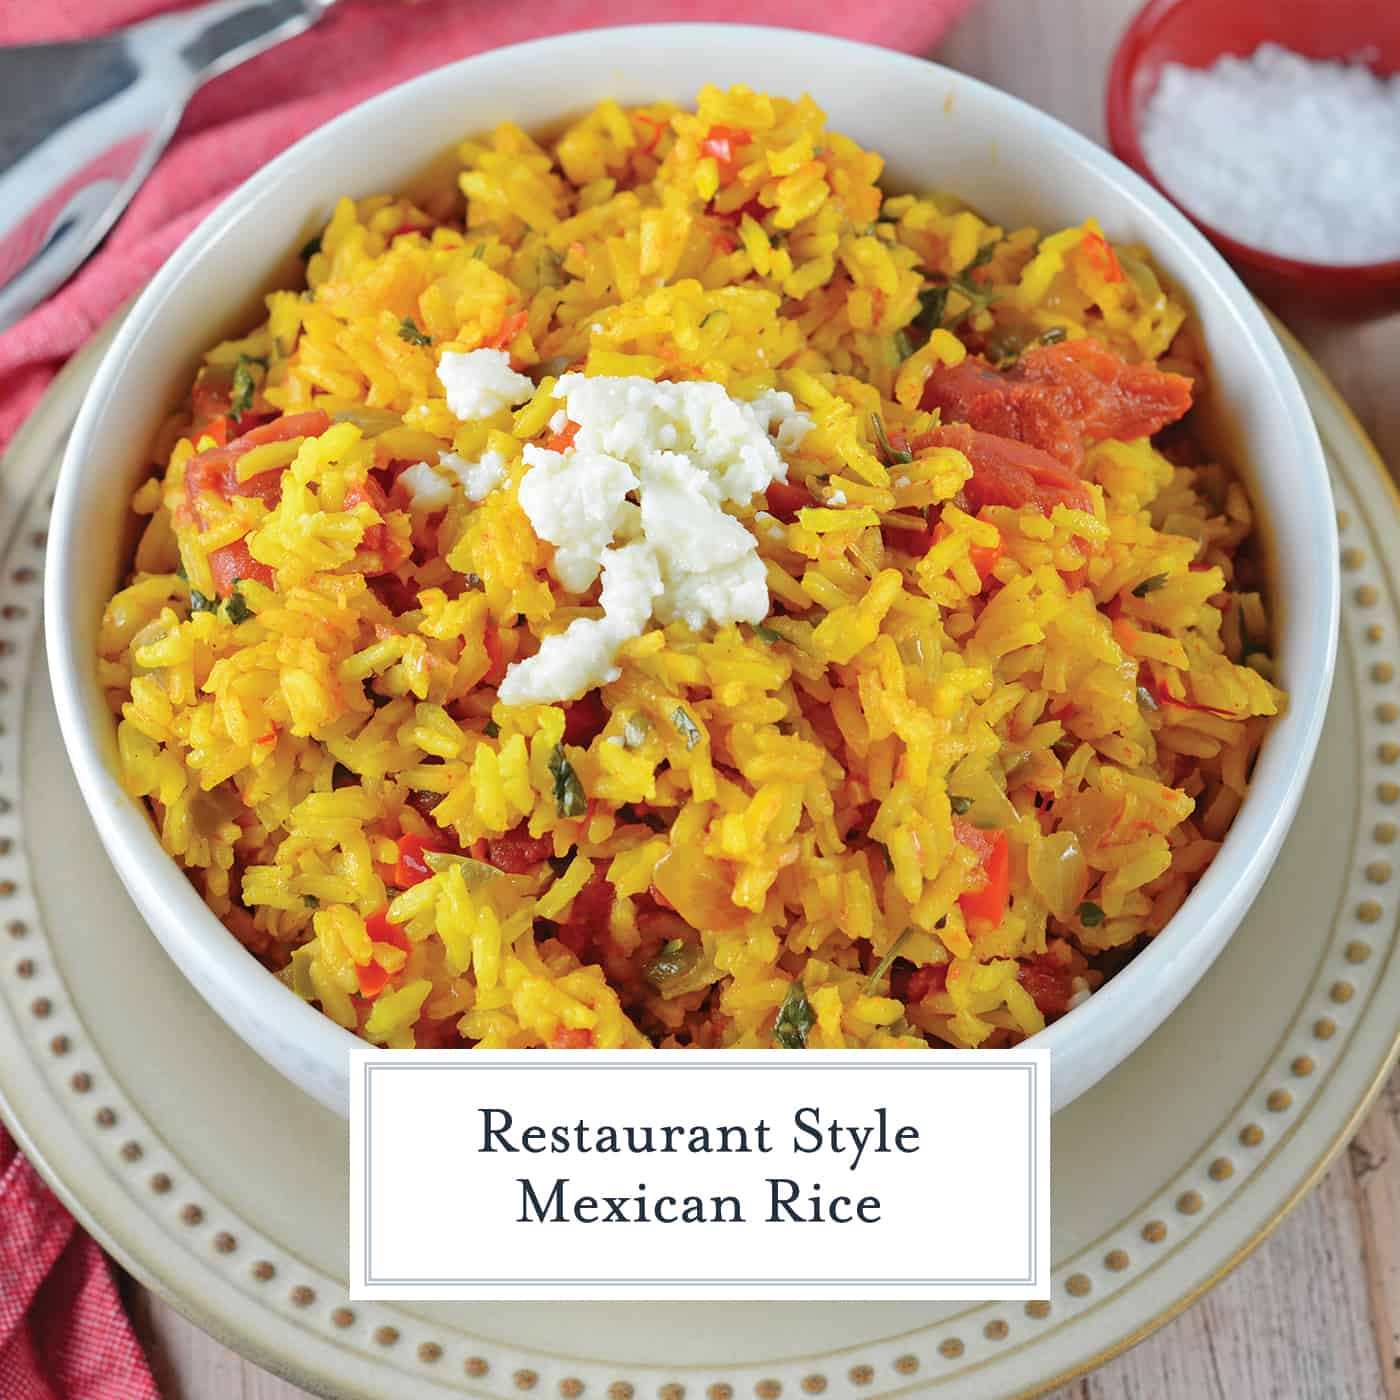 Restaurant Style Mexican Rice is a zesty side dish recipe packed full of vegetables and flavor using a delicious combination of red and green peppers, garlic, onions, tomatoes, chiles, and cilantro! #mexicanricerecipe #homemademexicanrice #yellowrice www.savoryexperiments.com